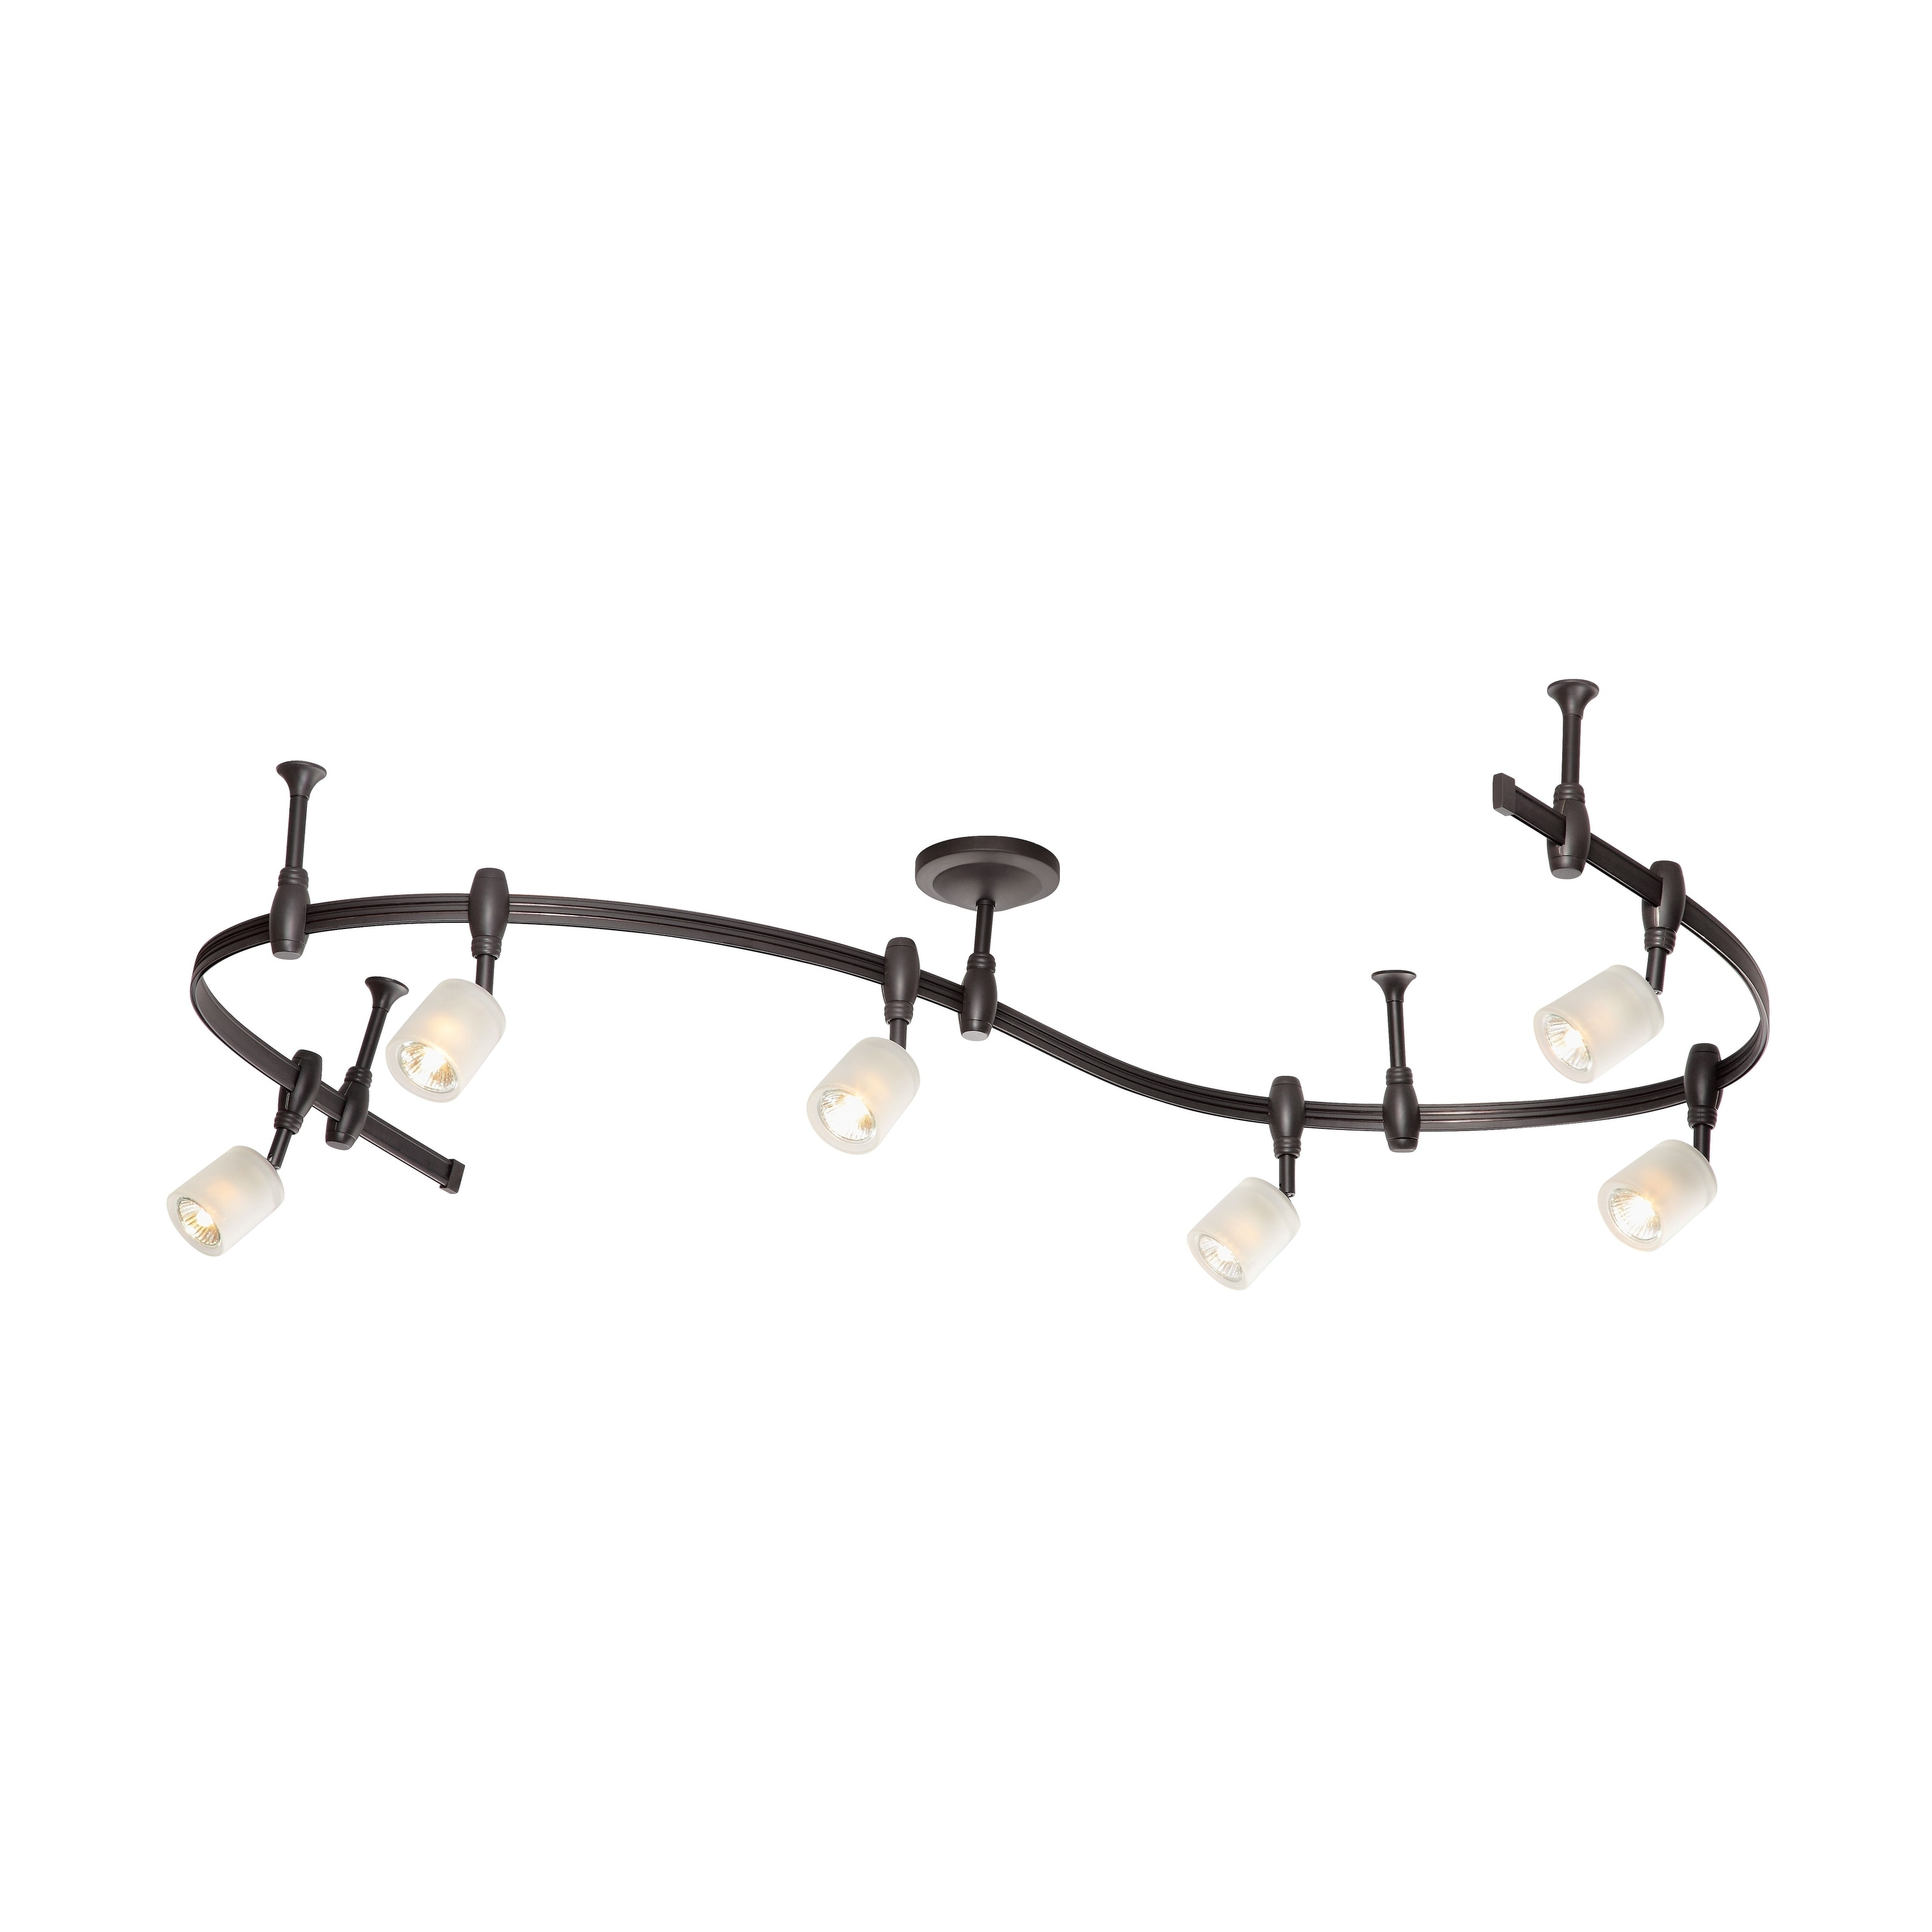 Catalina Lighting Murray 6 Light Bullet Flex Rail Track Kit 19657 000 In Oil Rubbed Bronze Free Shipping Today 19835166